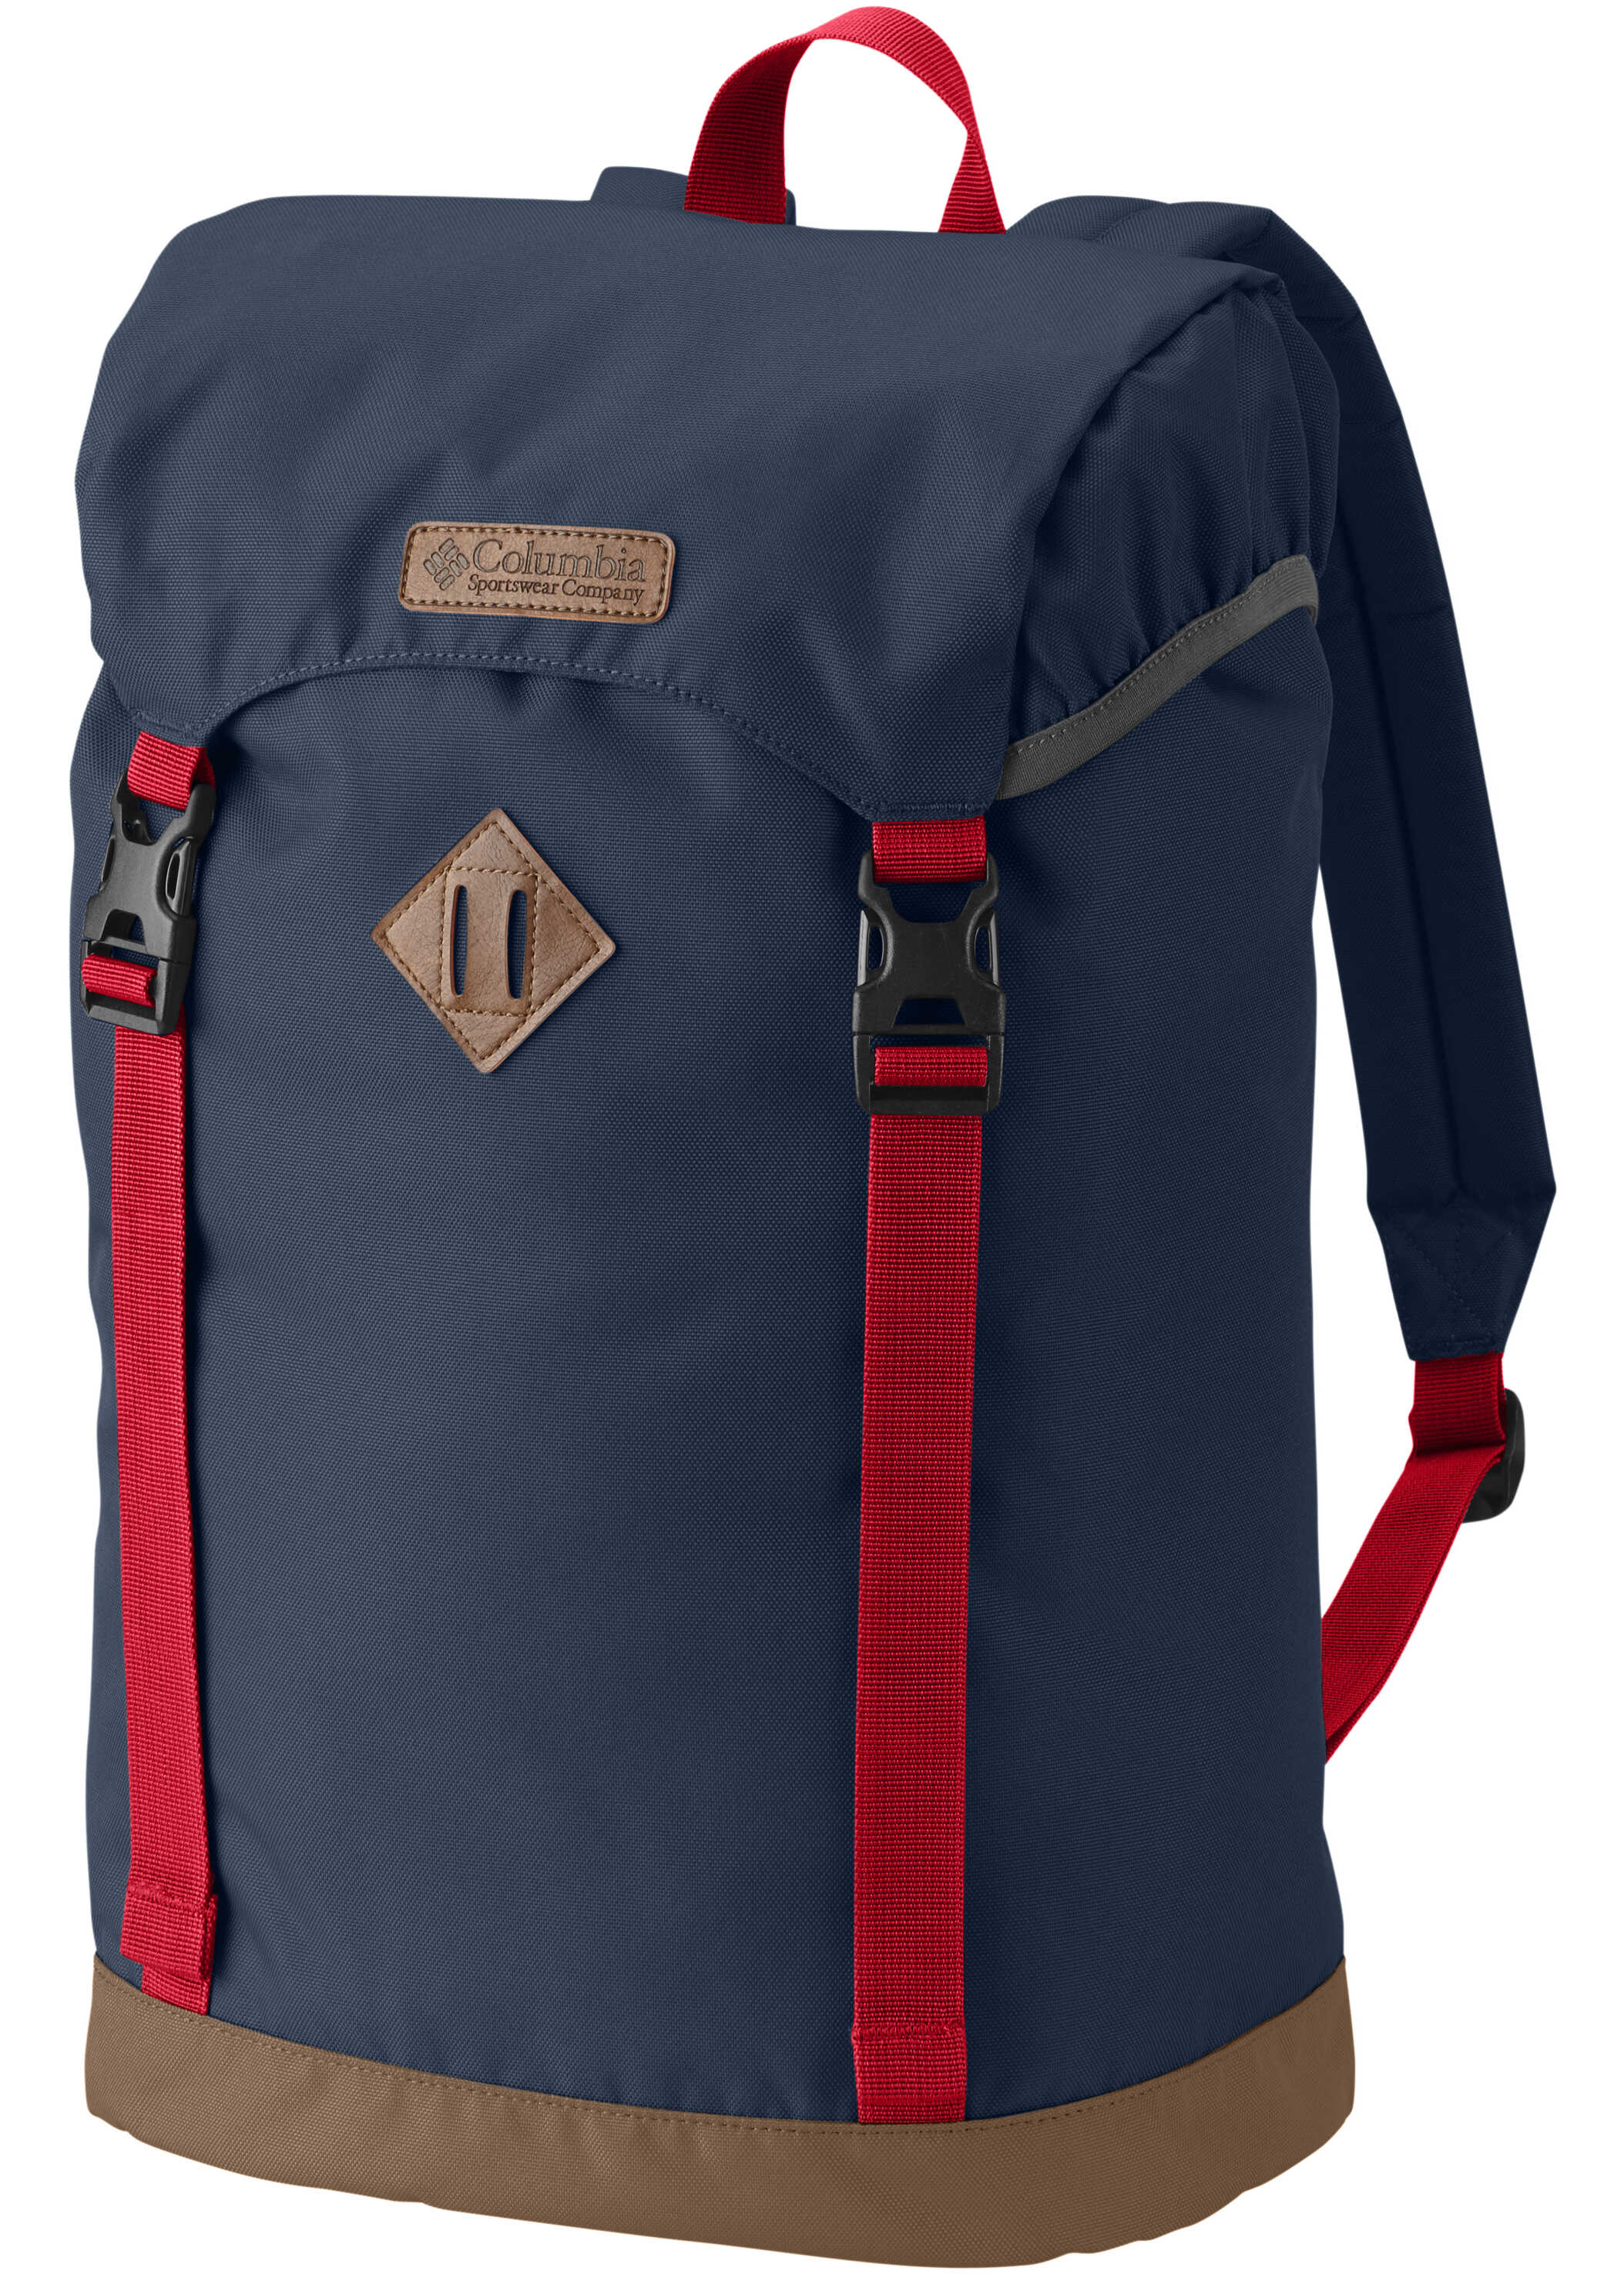 Columbia Classic Outdoor 25L Daypack-Black Whale/Delta